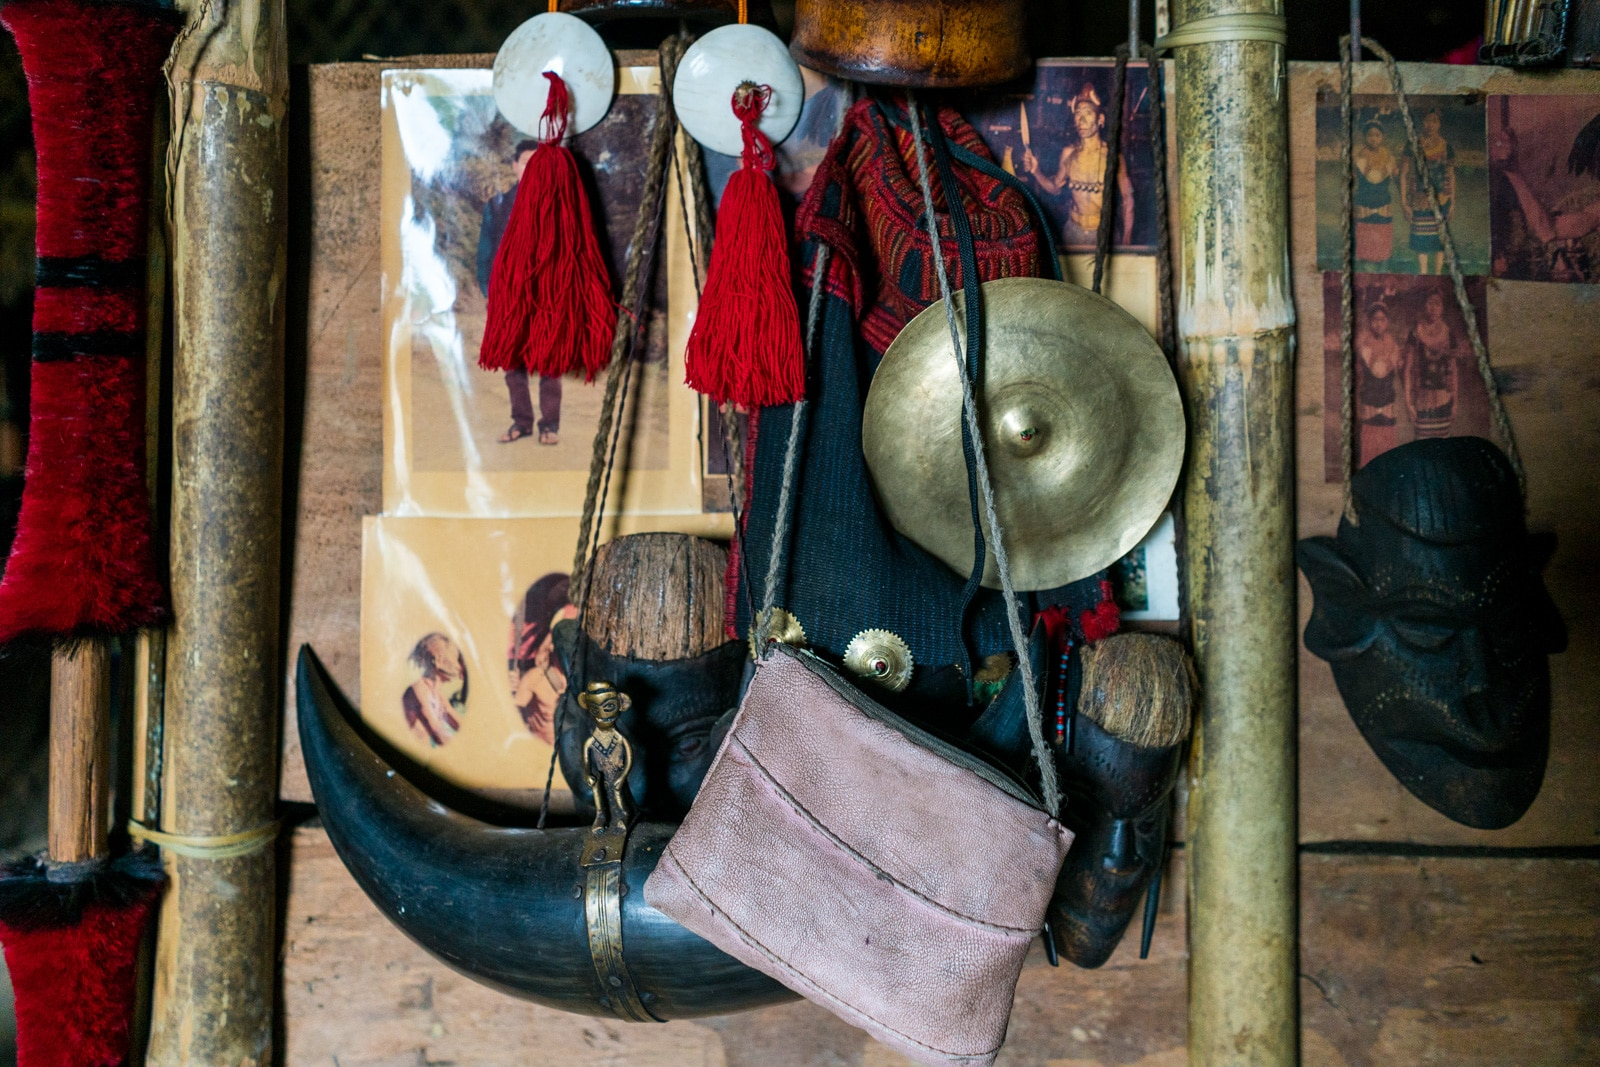 Spears, red tassels, and photos on the bamboo hut wall